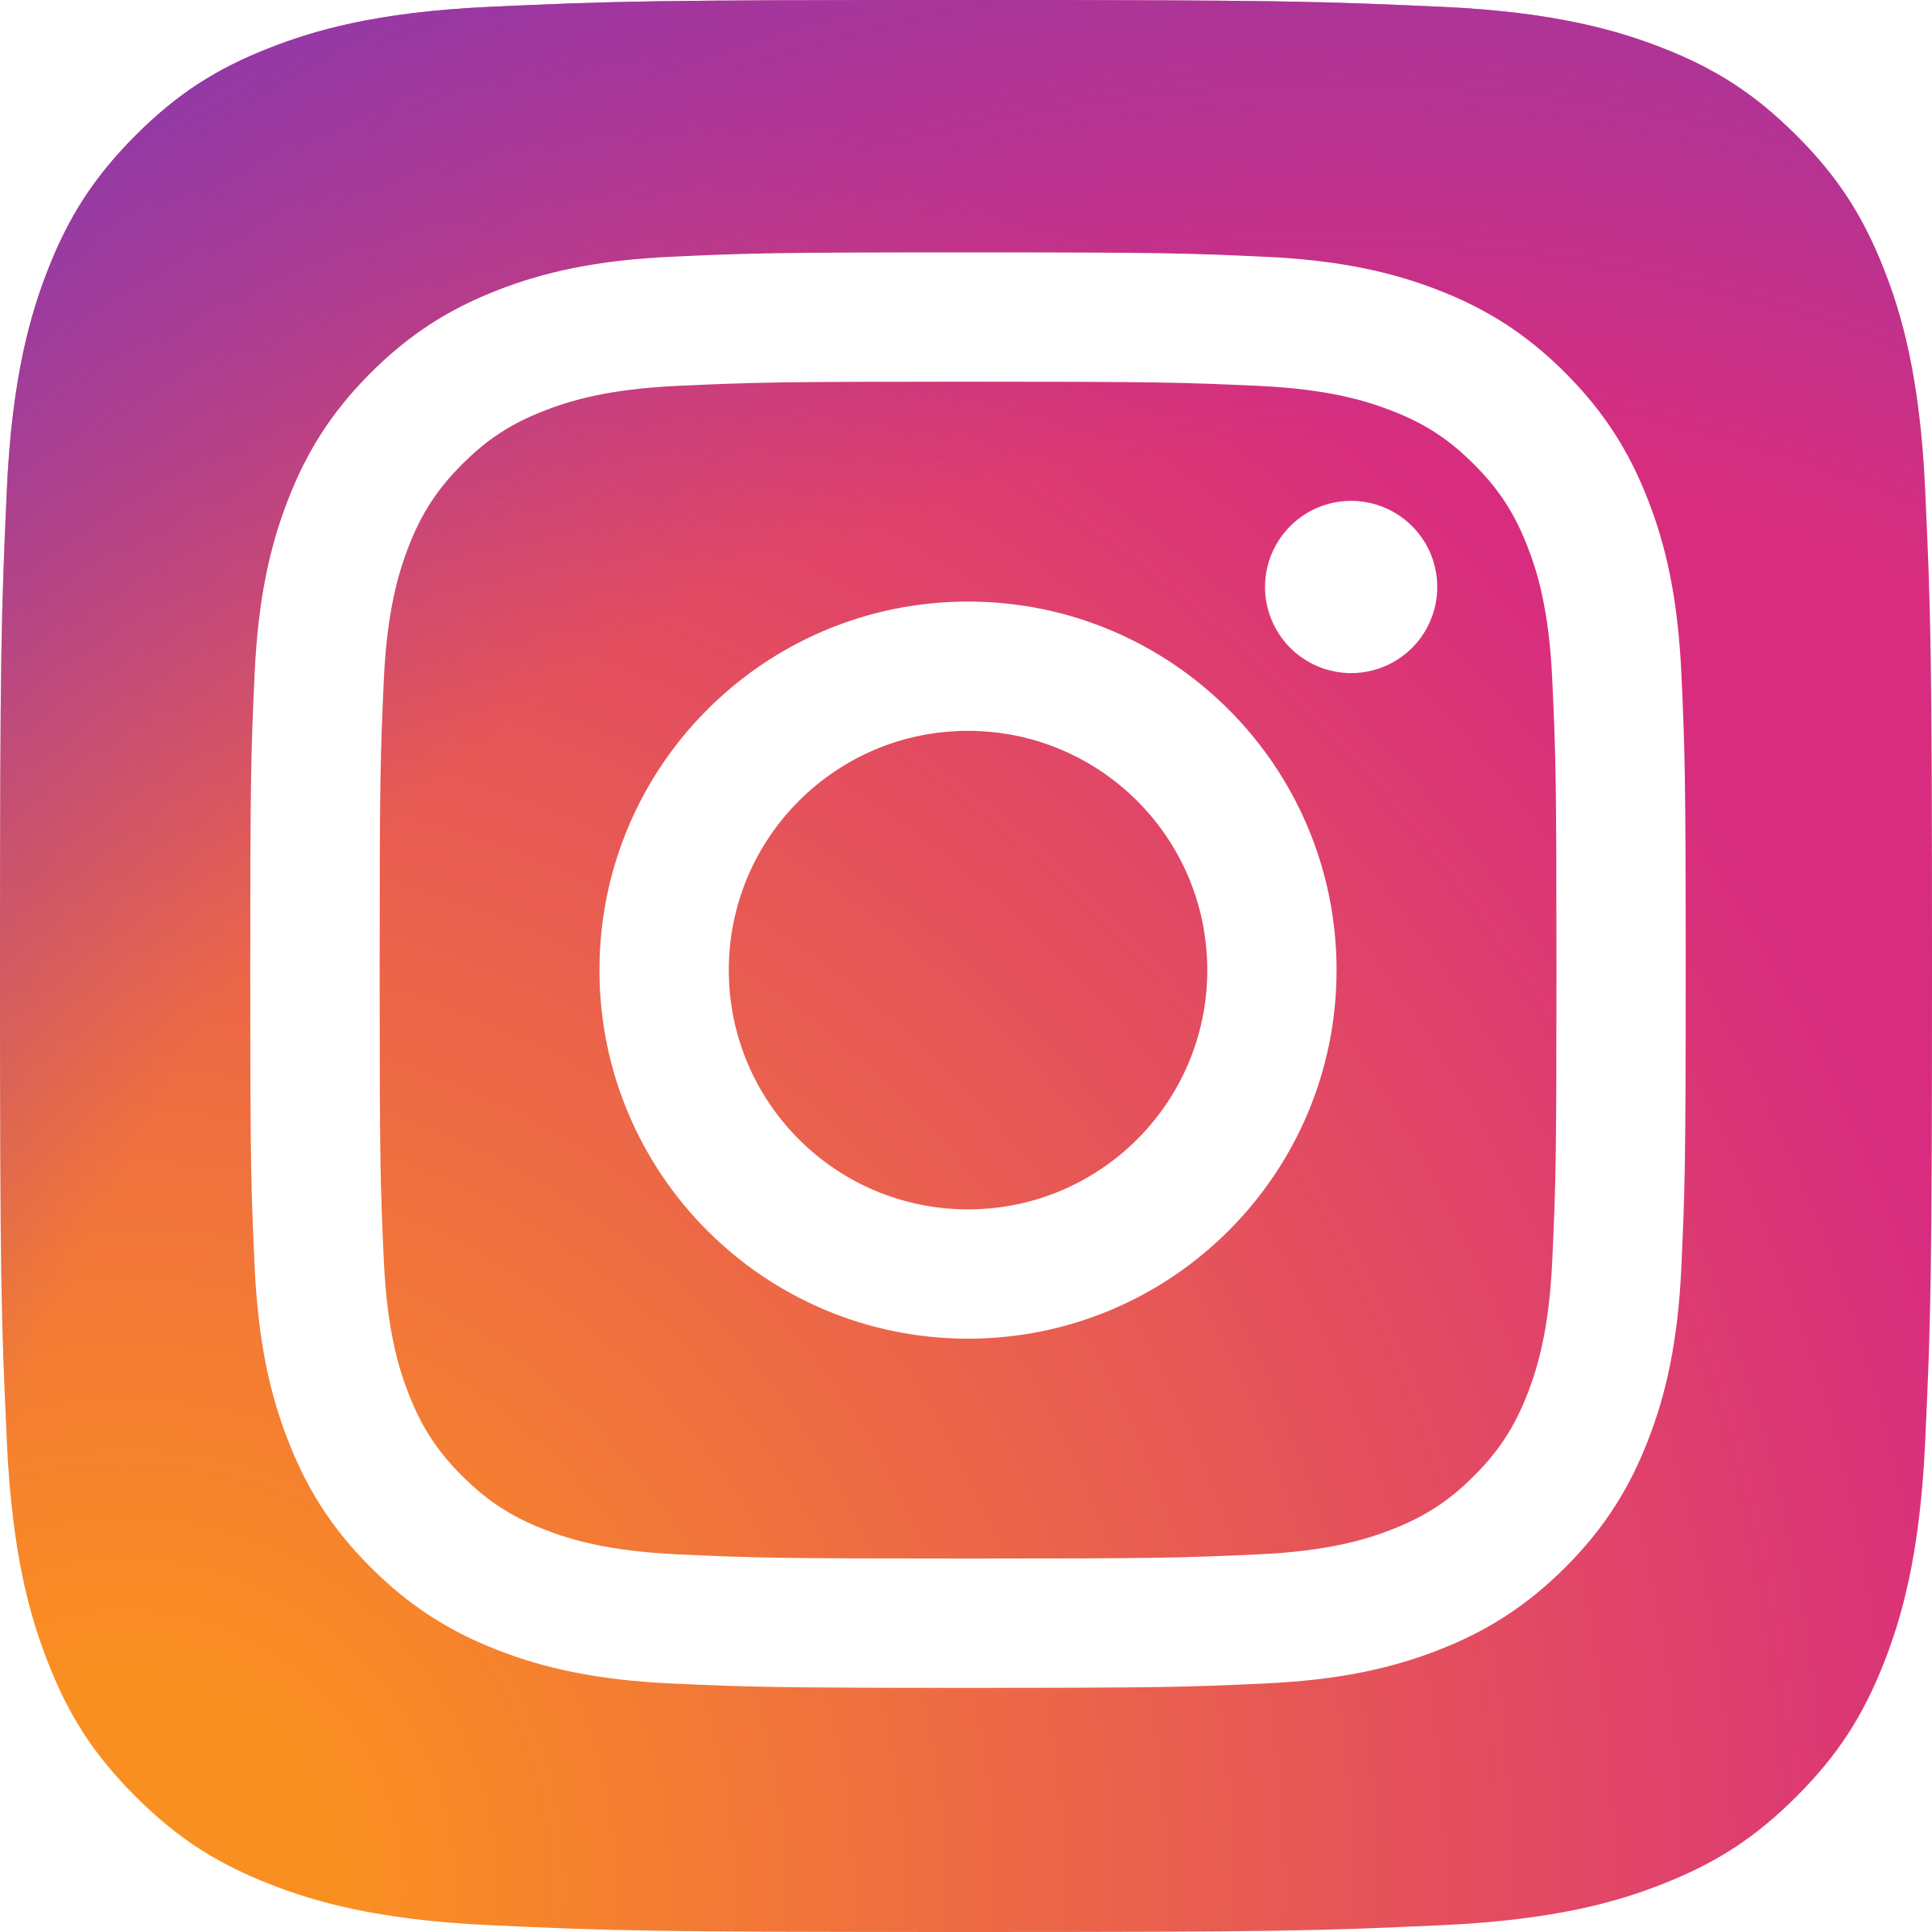 Instagram Feed Below - Follow us